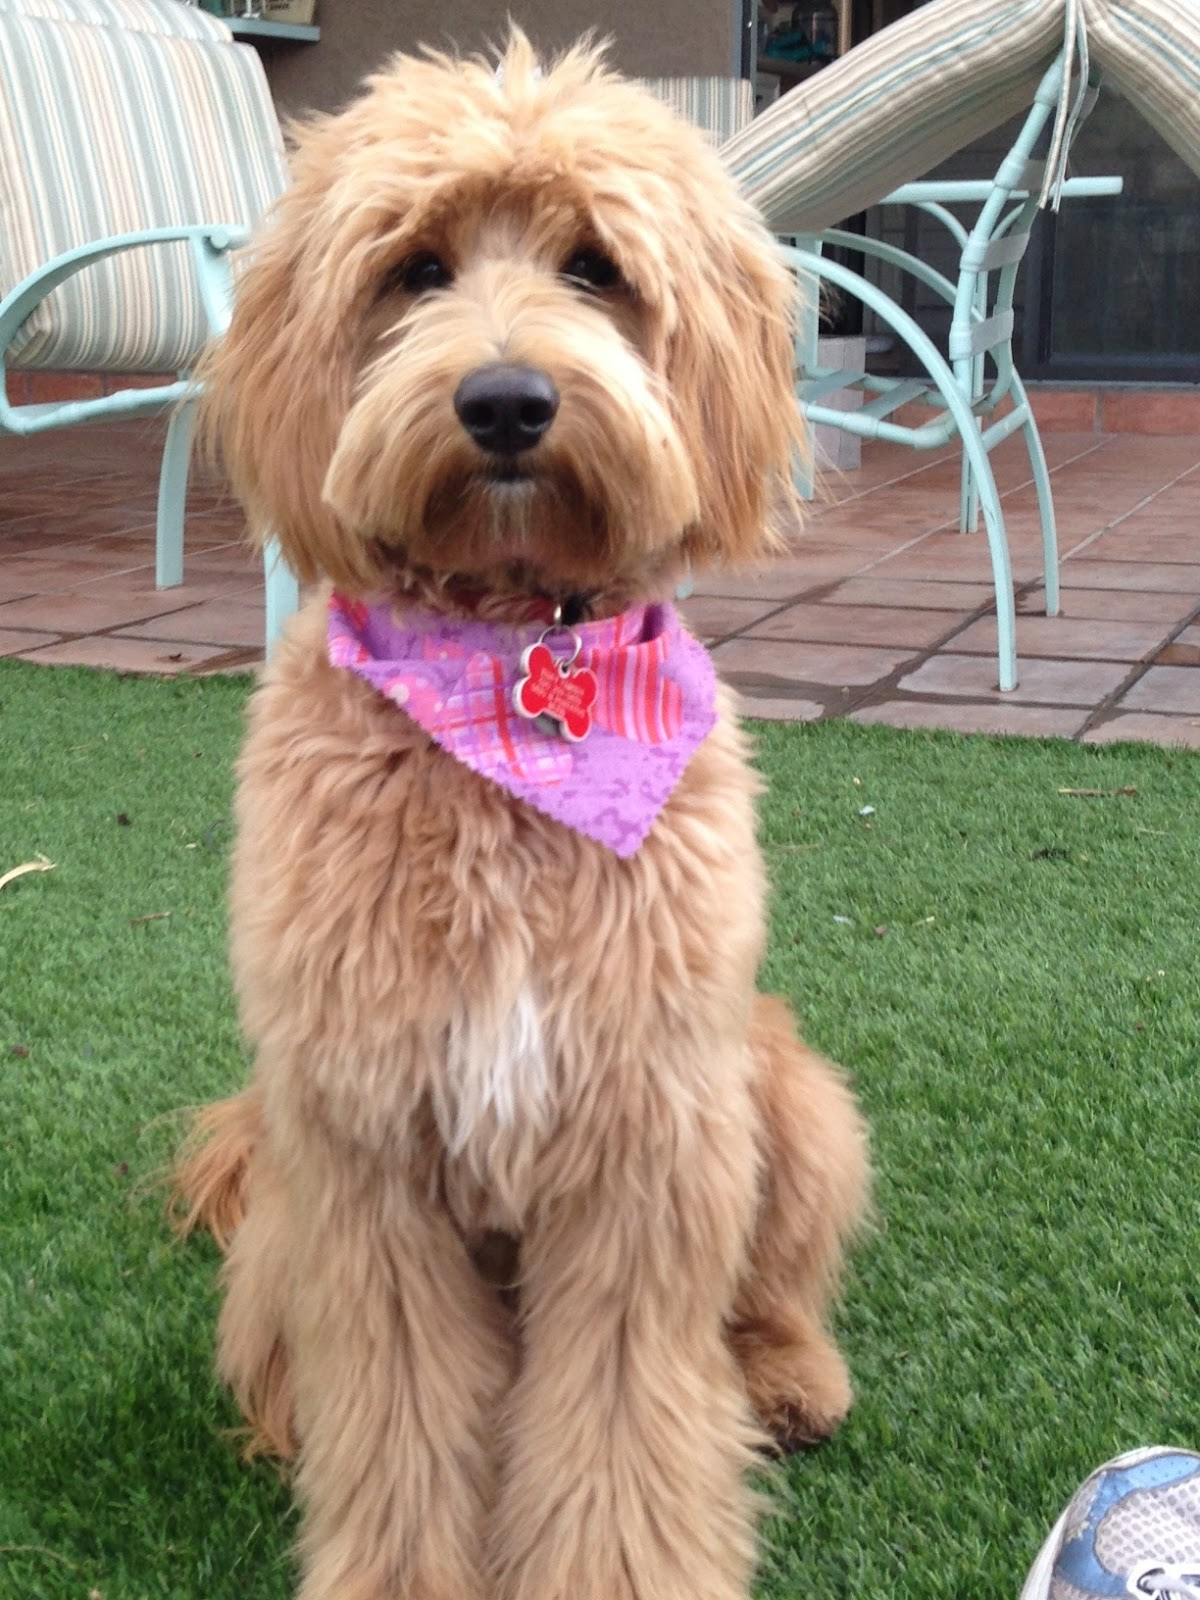 GROOMING NEEDS OF THE AUSTRALIAN LABRADOODLE